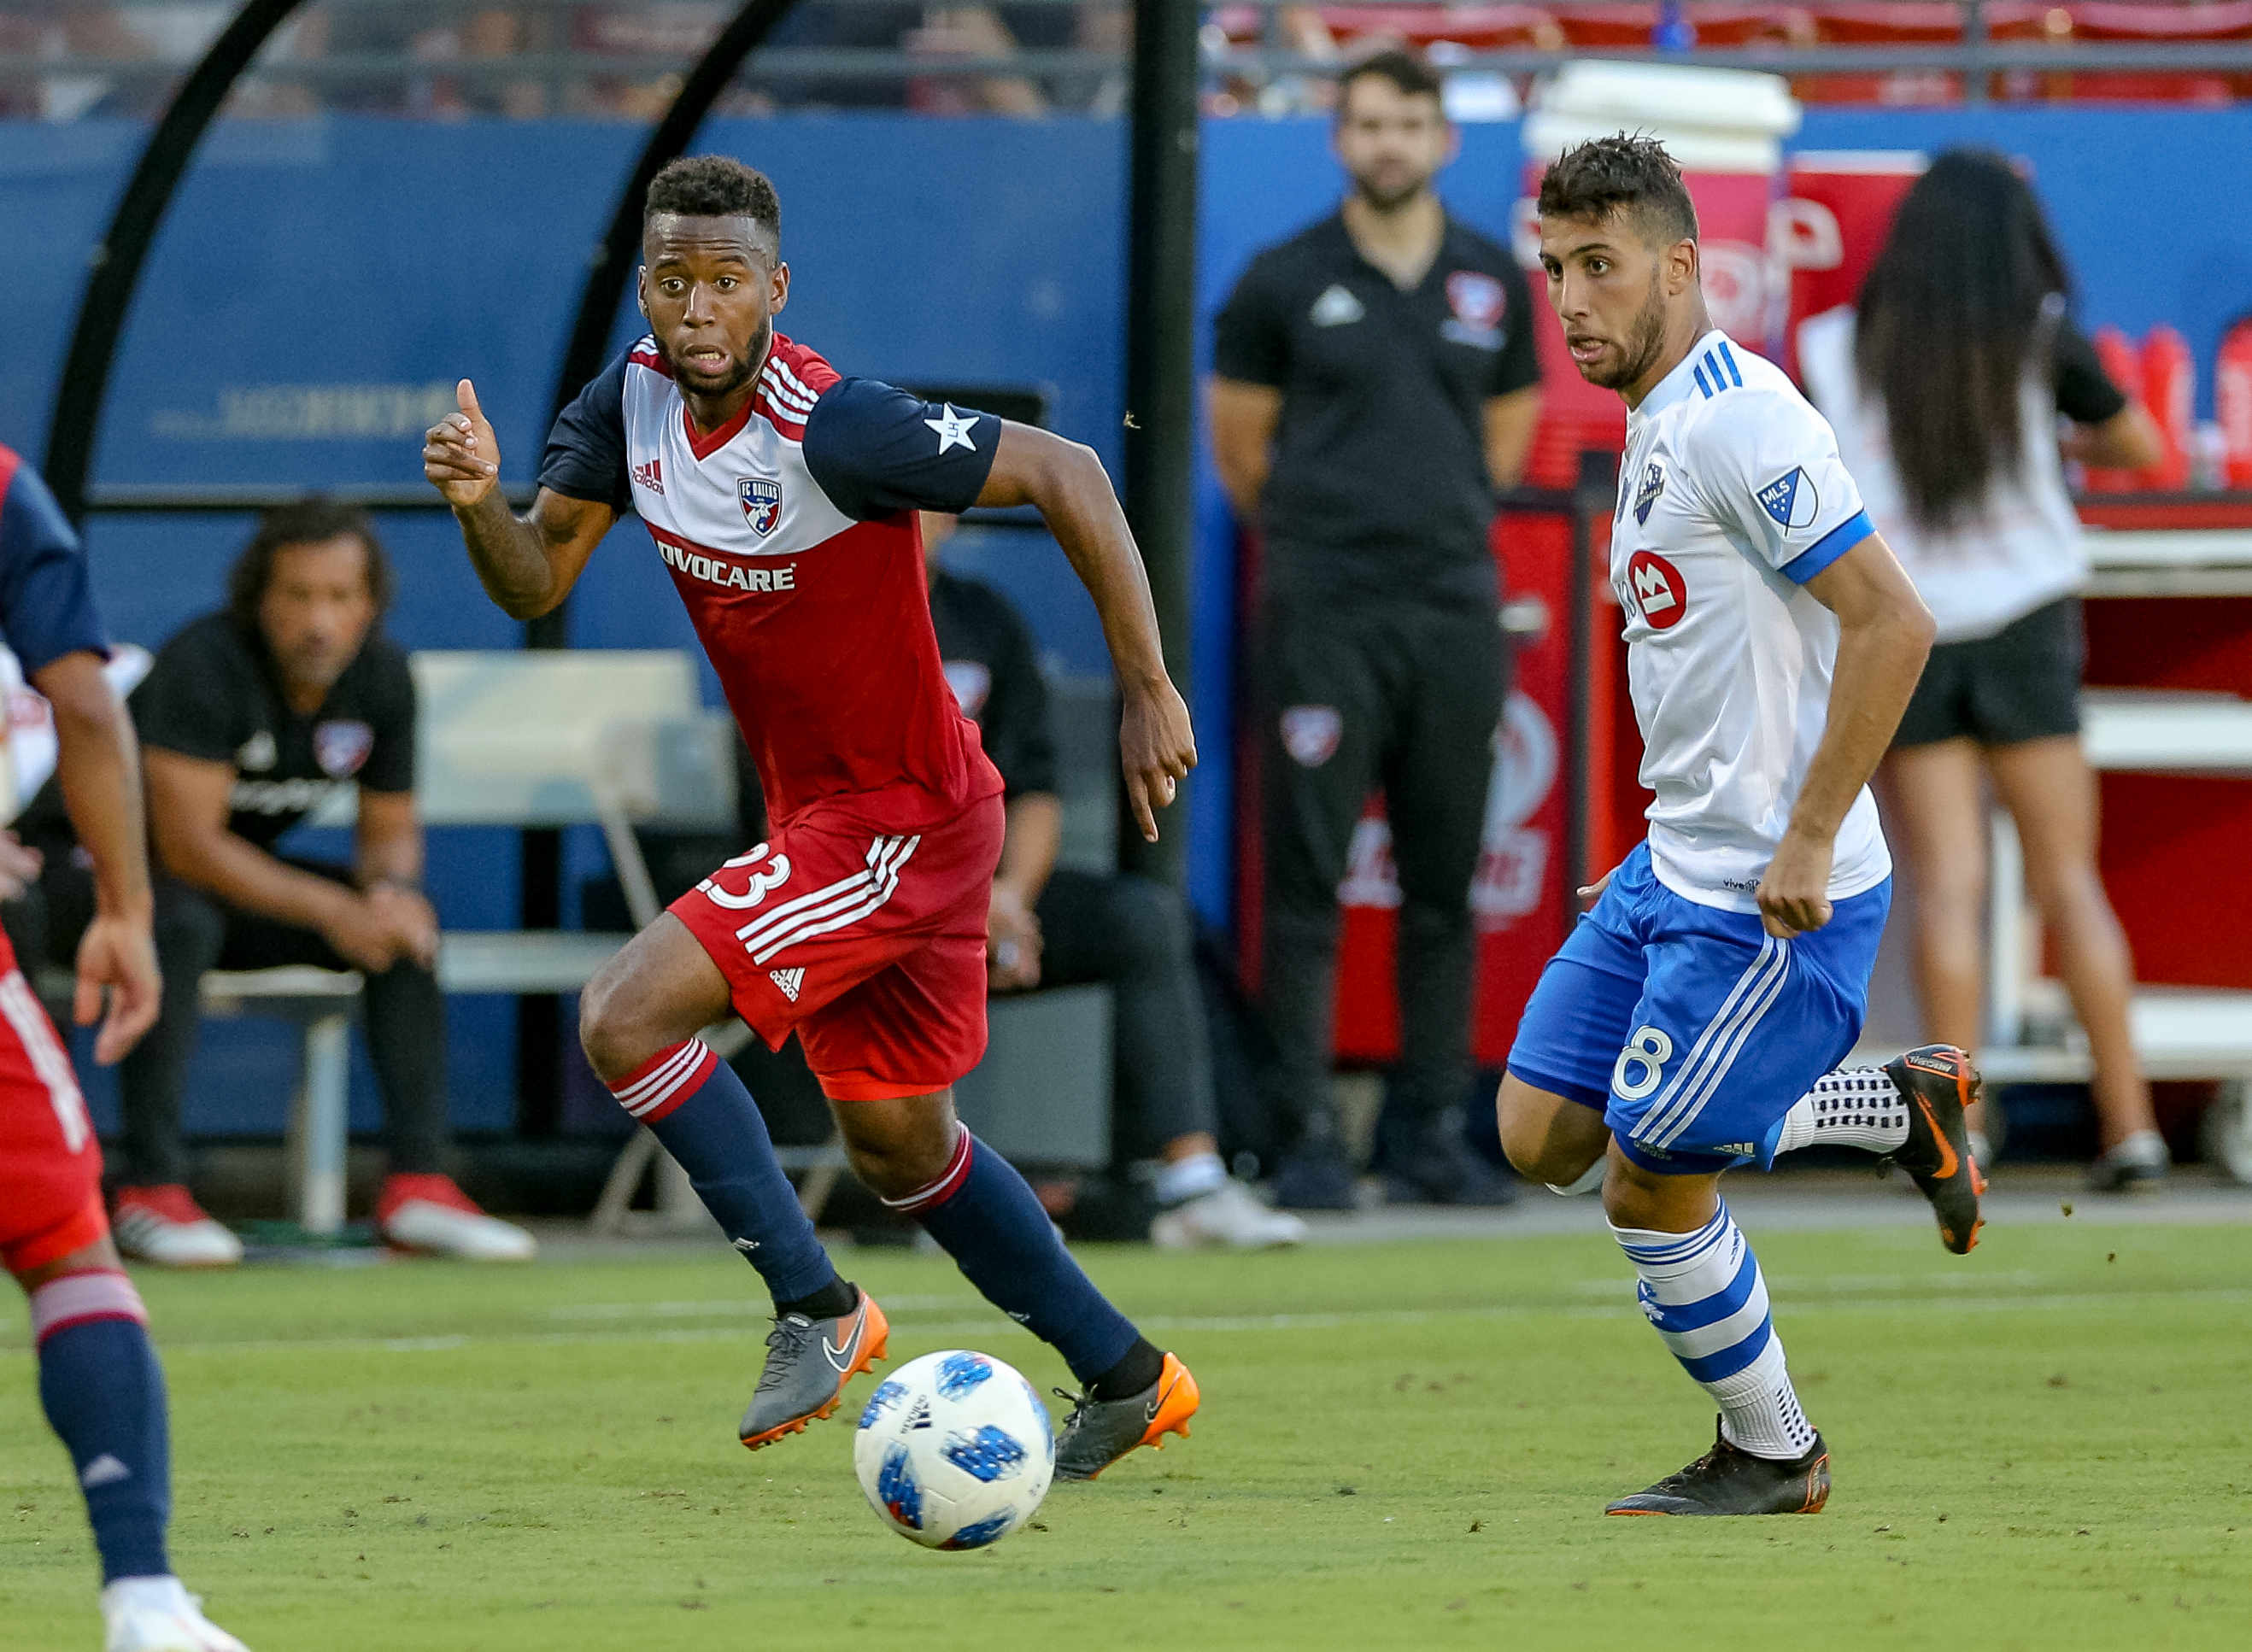 SOCCER: JUN 09 MLS - Montreal Impact at FC Dallas